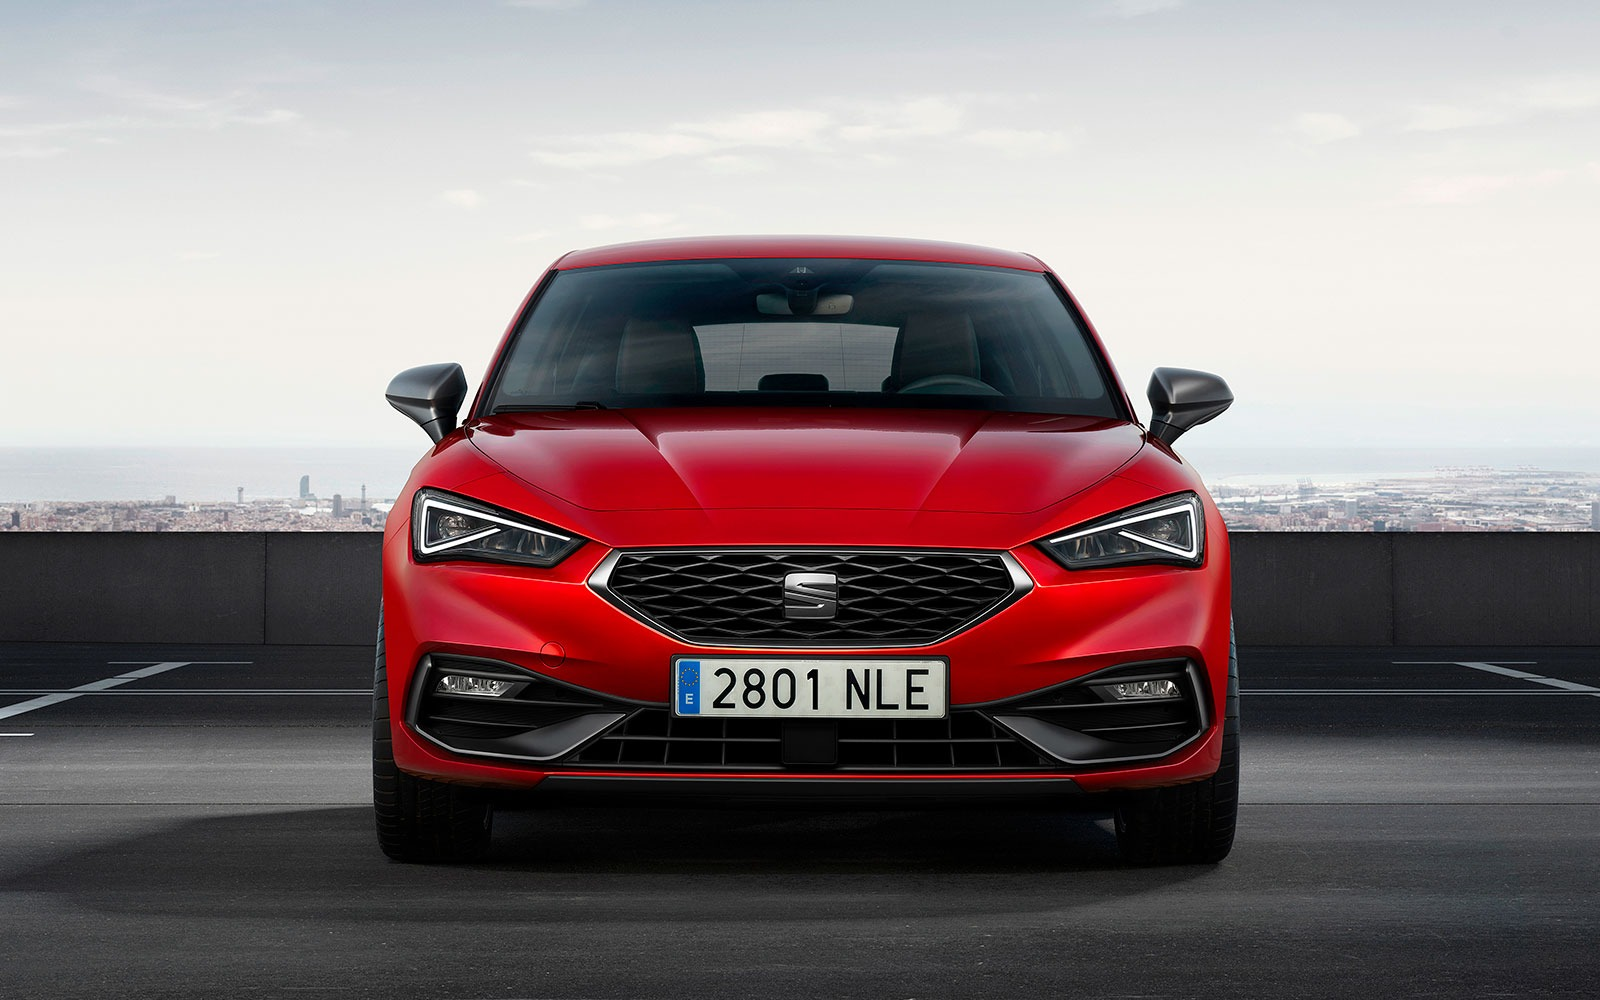 Leon, the single best-selling Seat out there, is now up for grabs with new petrol and diesel engines in the UK.